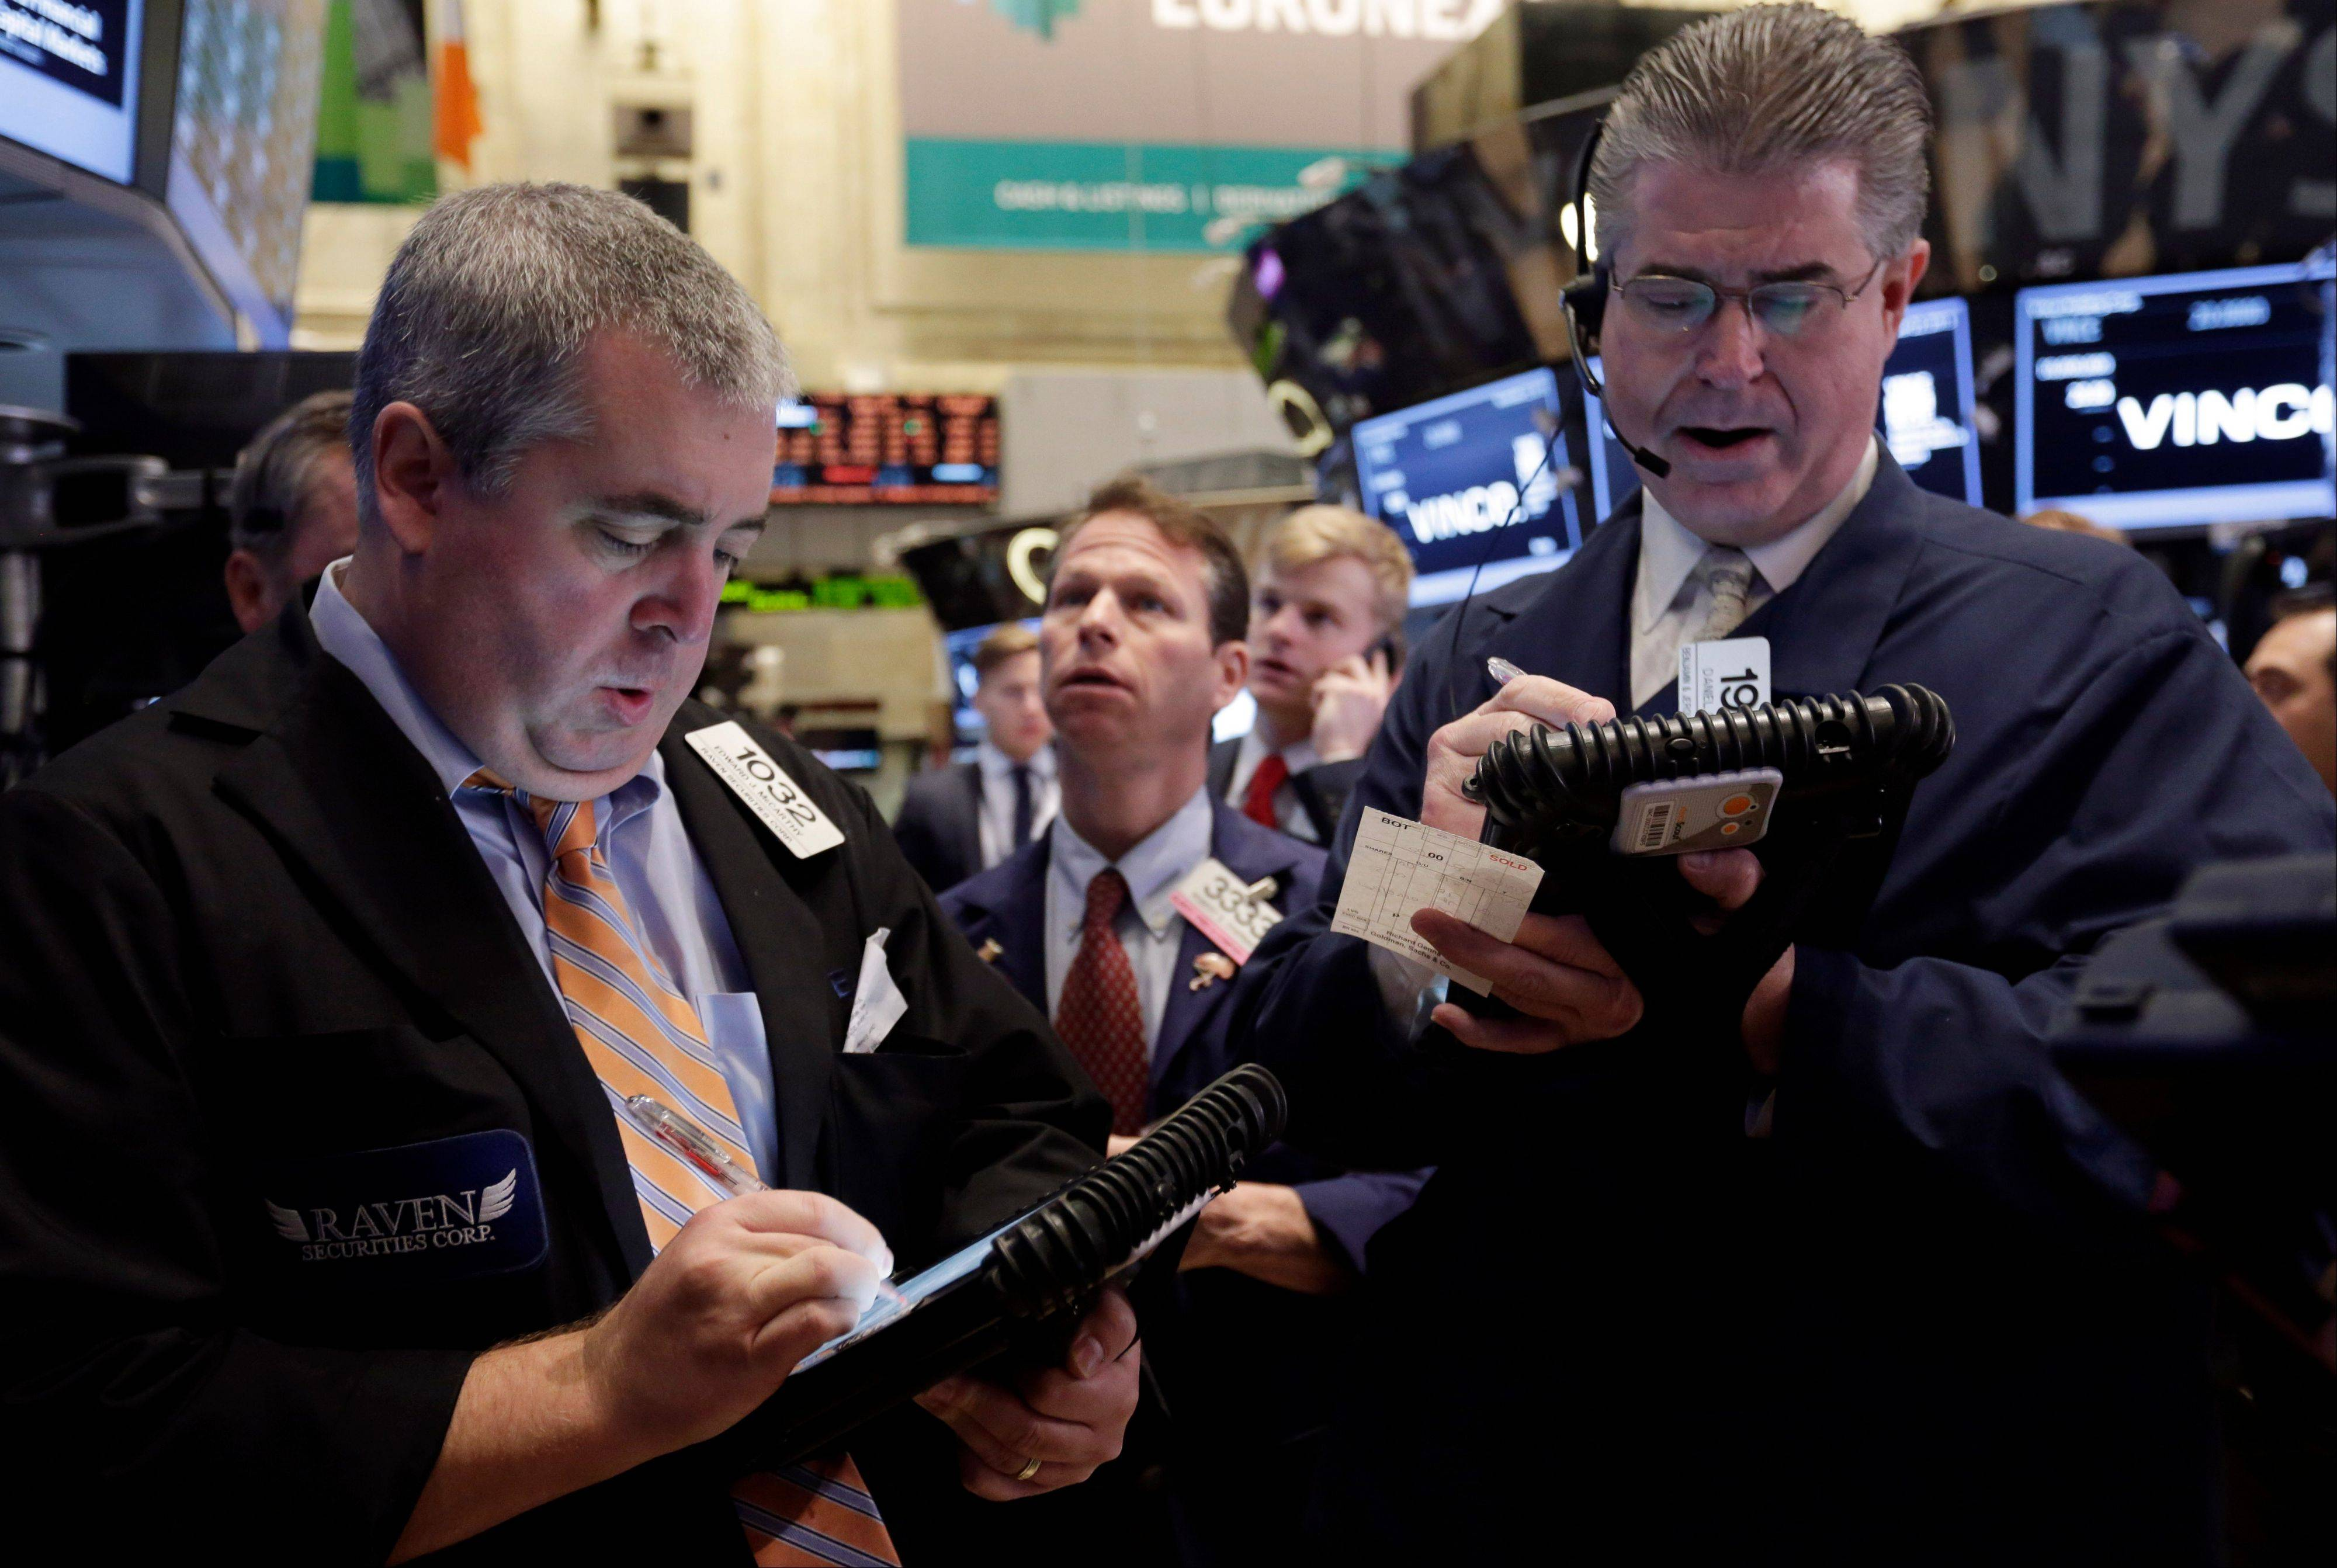 U.S. stocks fell Monday, with the Standard & Poor�s 500 Index extending declines in the final hour of trading, amid data showed manufacturing unexpectedly climbed last month and reports on holiday retail sales.